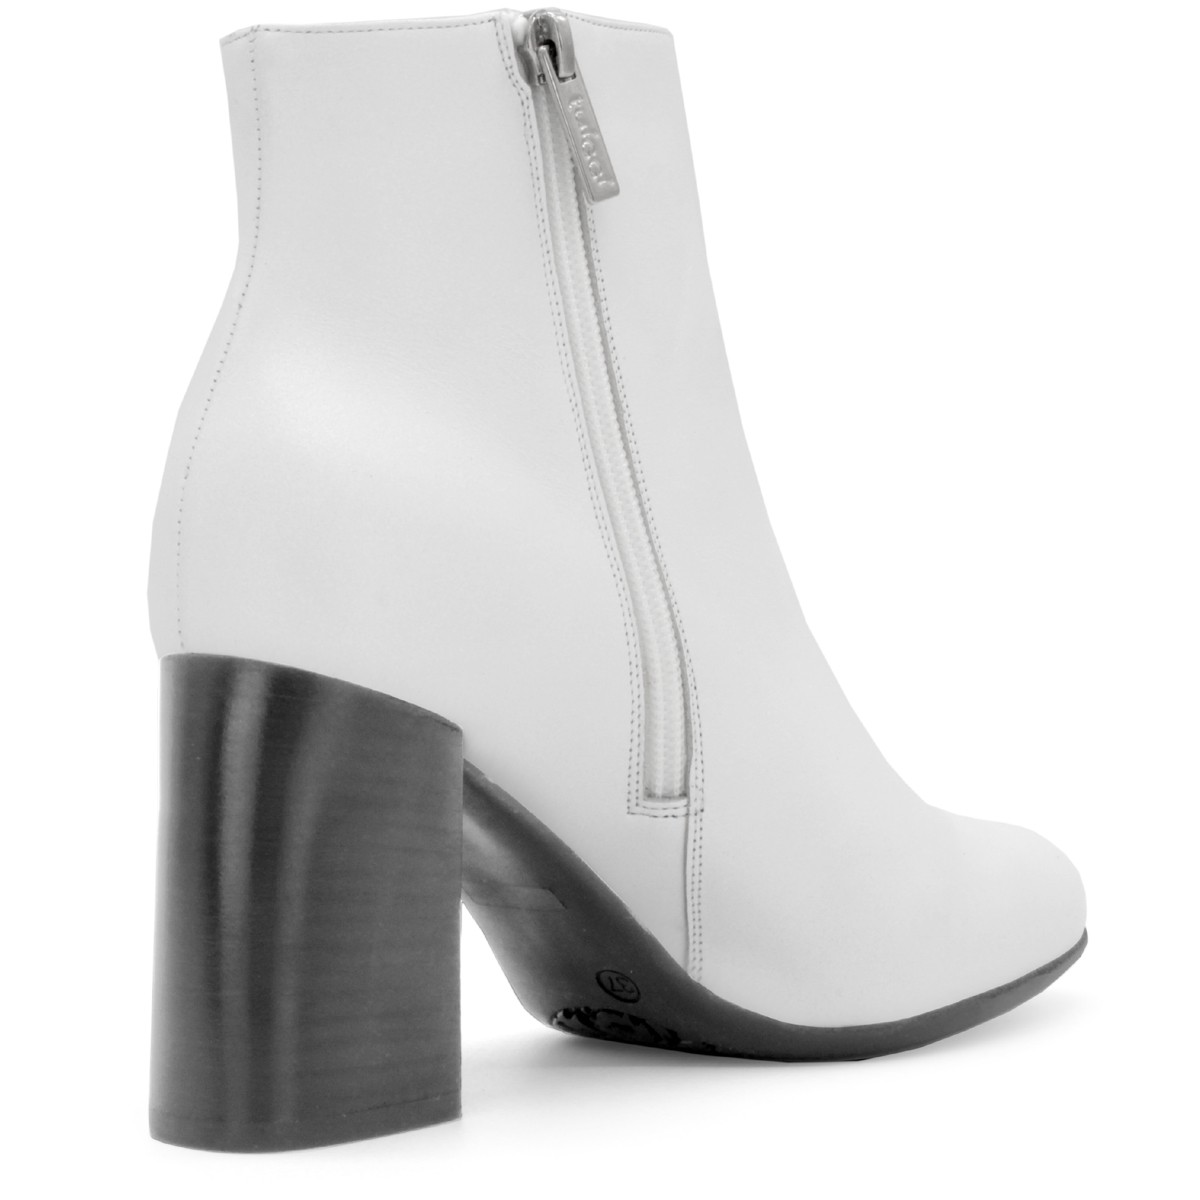 WHITE LEATHER ROUND TOE ANKLE BOOTS 90MM